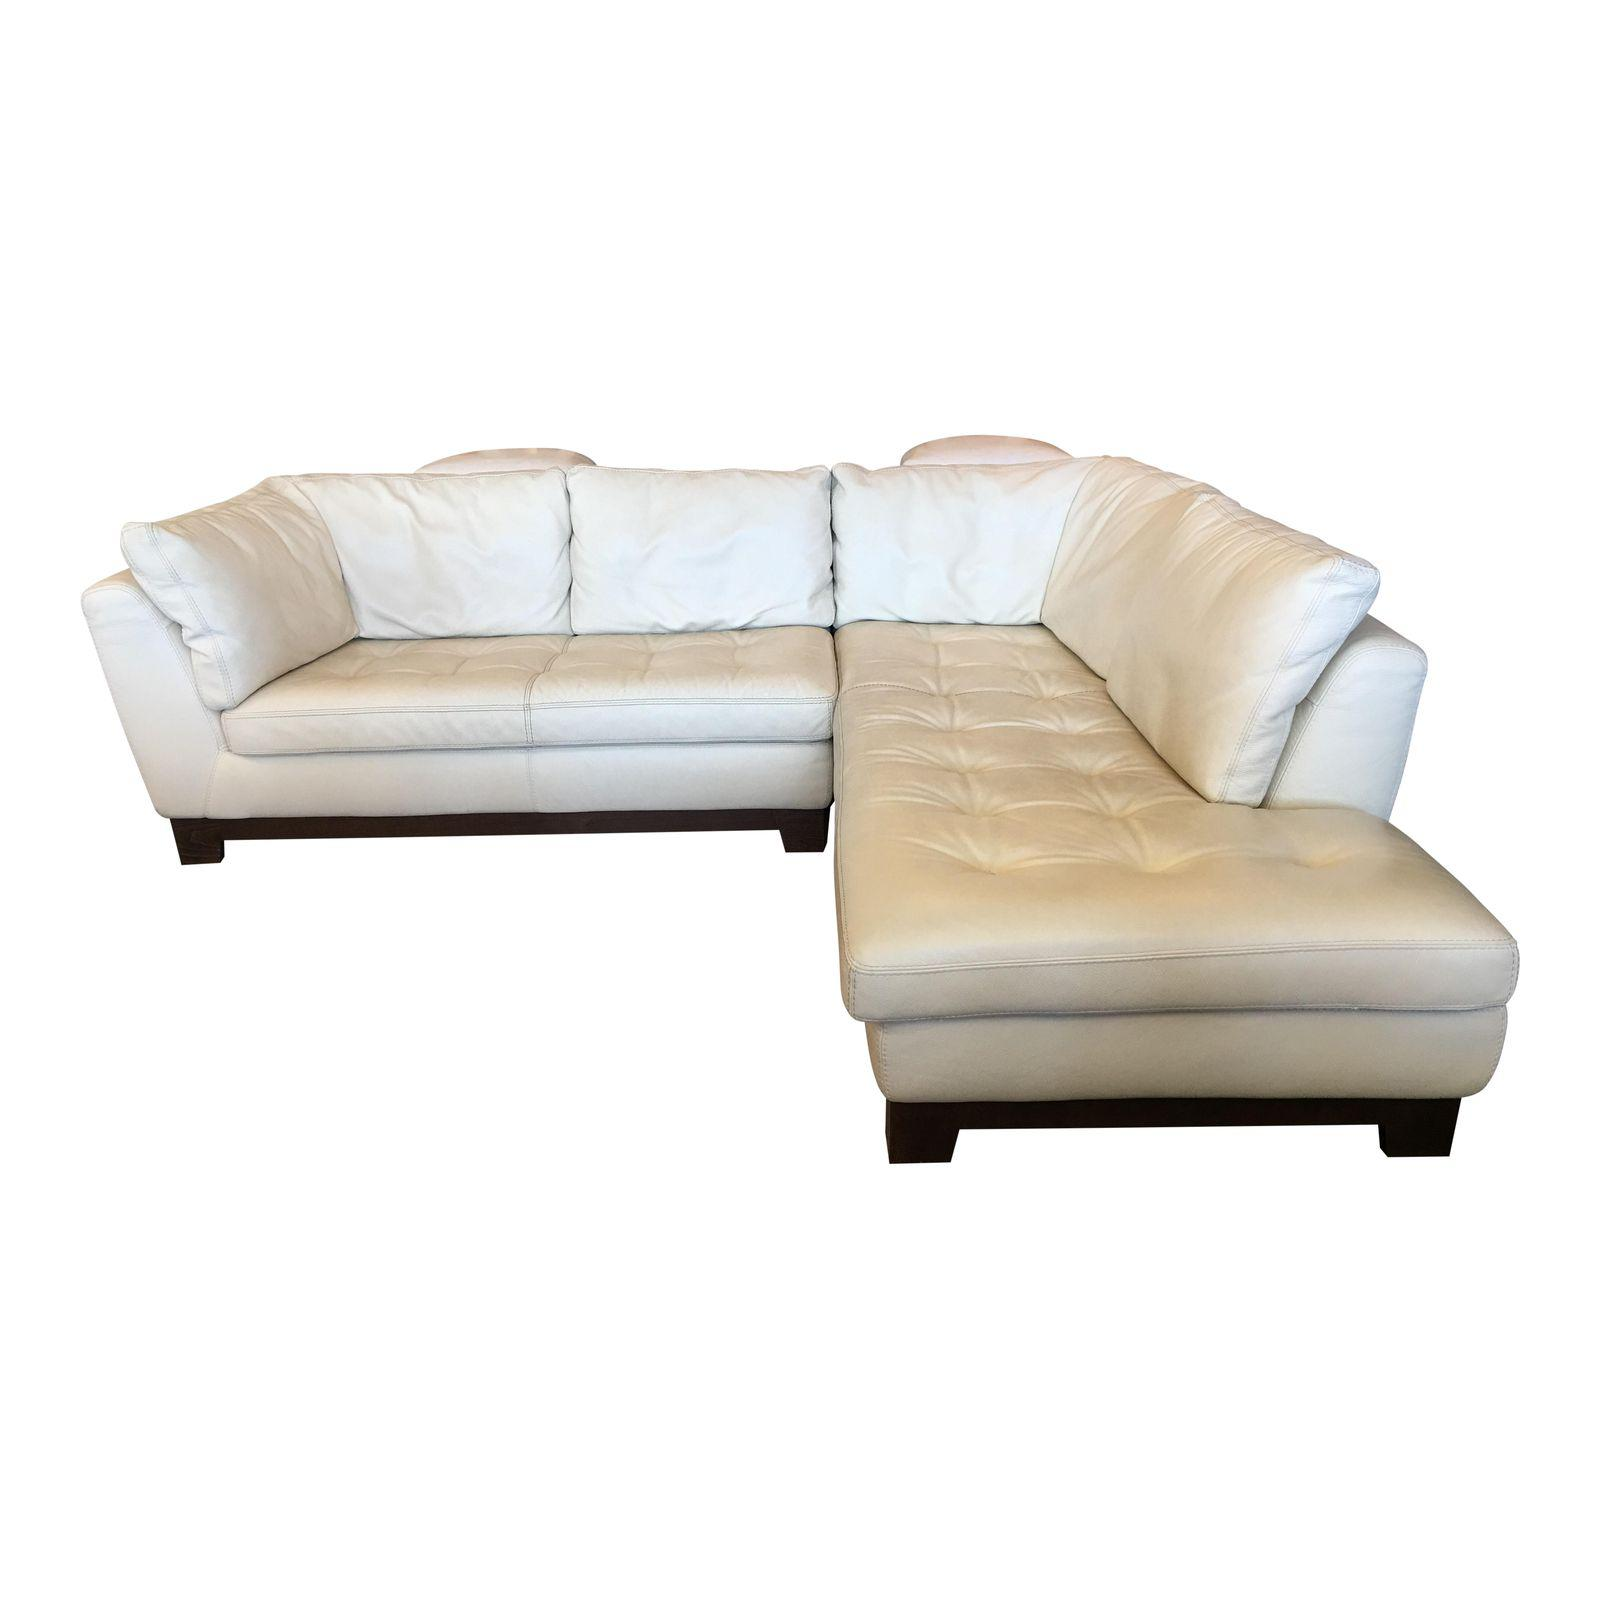 roche bobois ivory leather serenite sectional design plus gallery. Black Bedroom Furniture Sets. Home Design Ideas